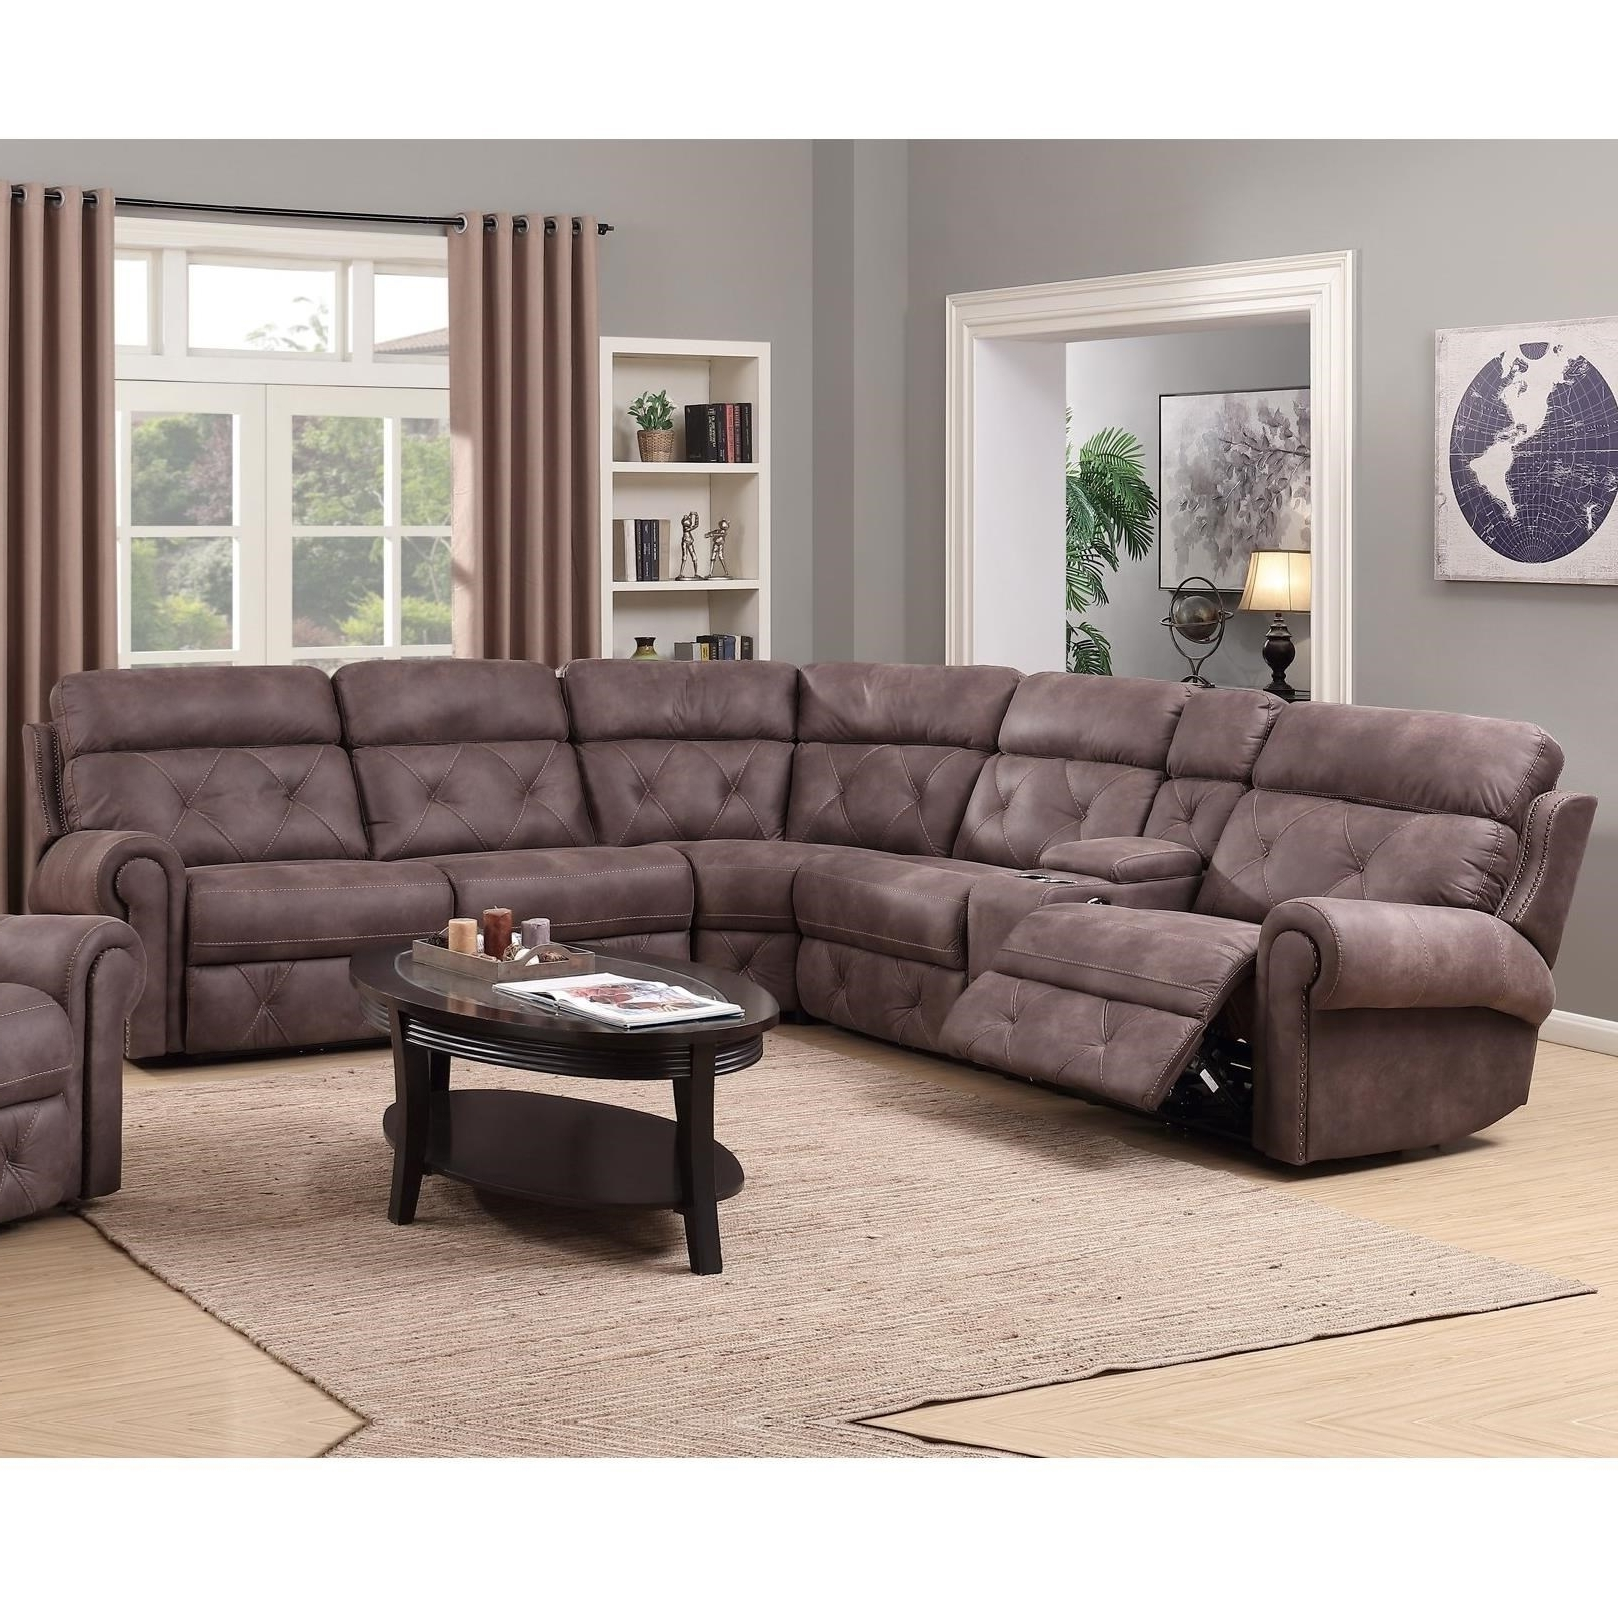 Happy Leather Company 1378 Power Reclining Sectional With Console For Famous Sectional Sofas At Birmingham Al (View 7 of 20)